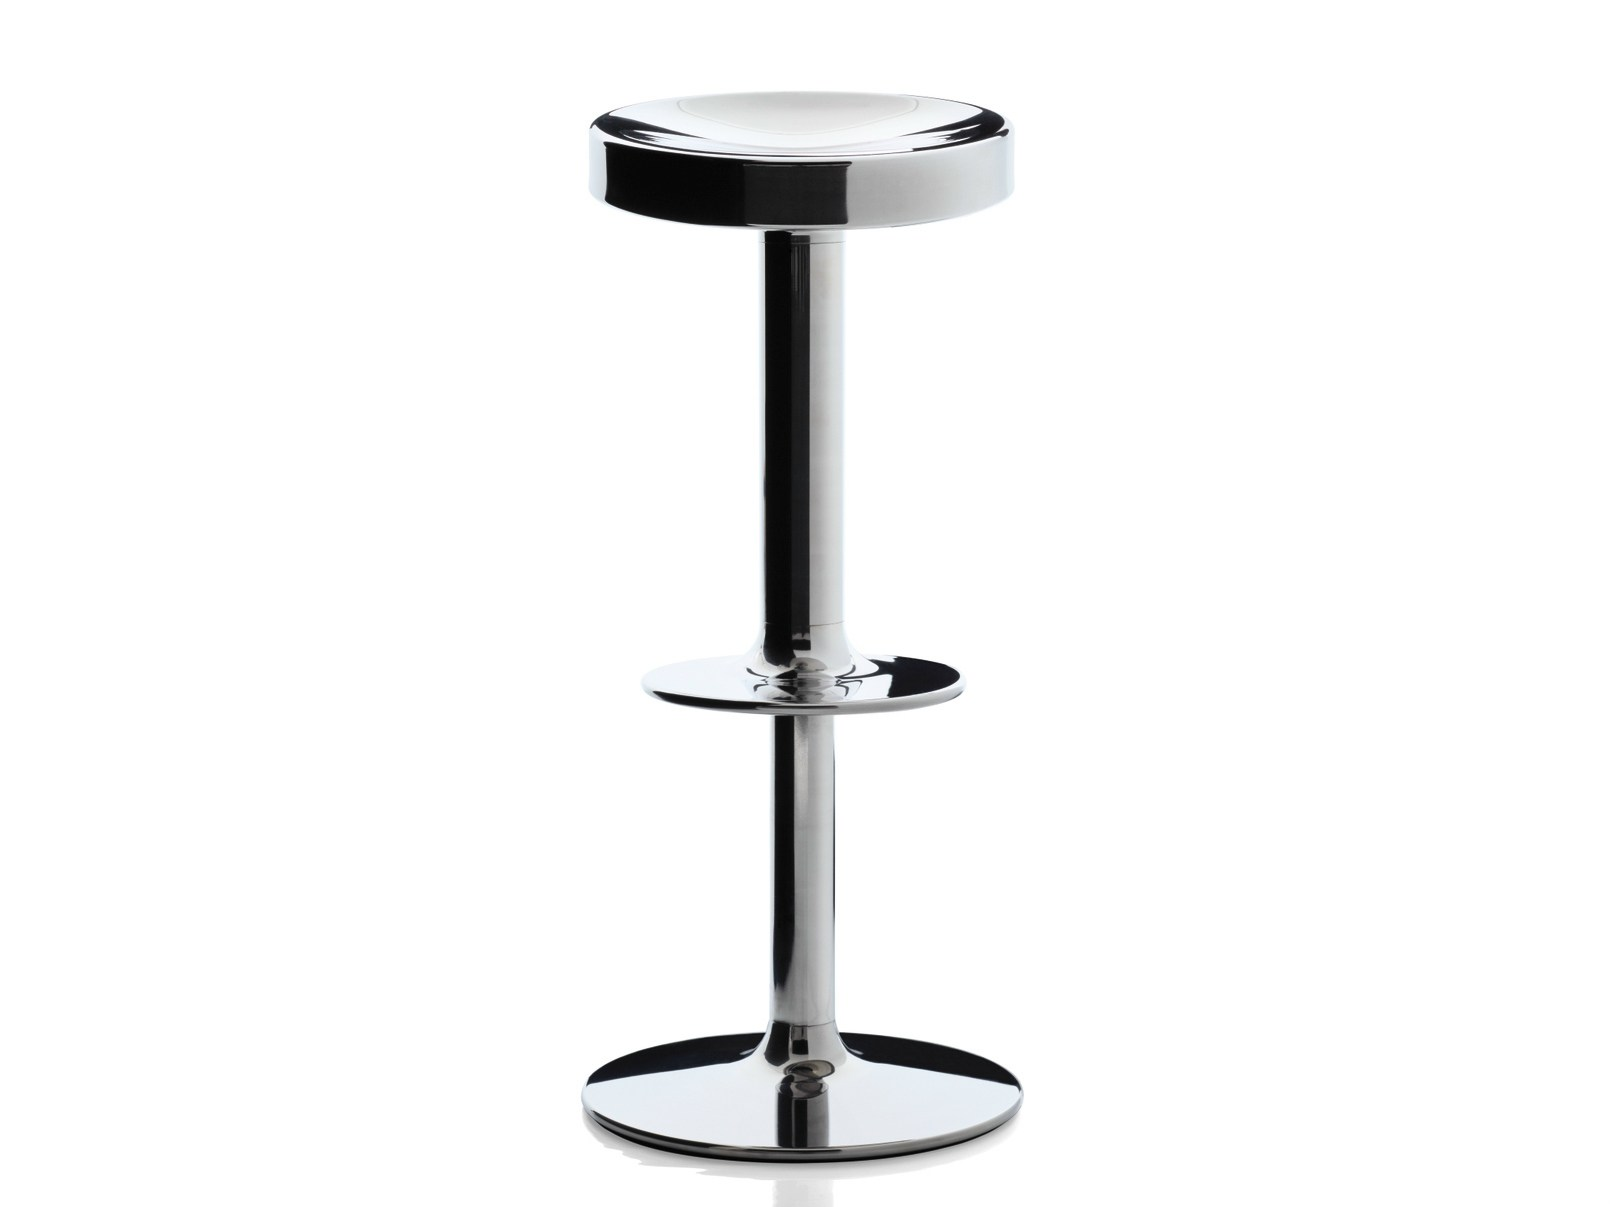 Gas Lift Design : Swivel stool with gas lift s sweet stainless steel